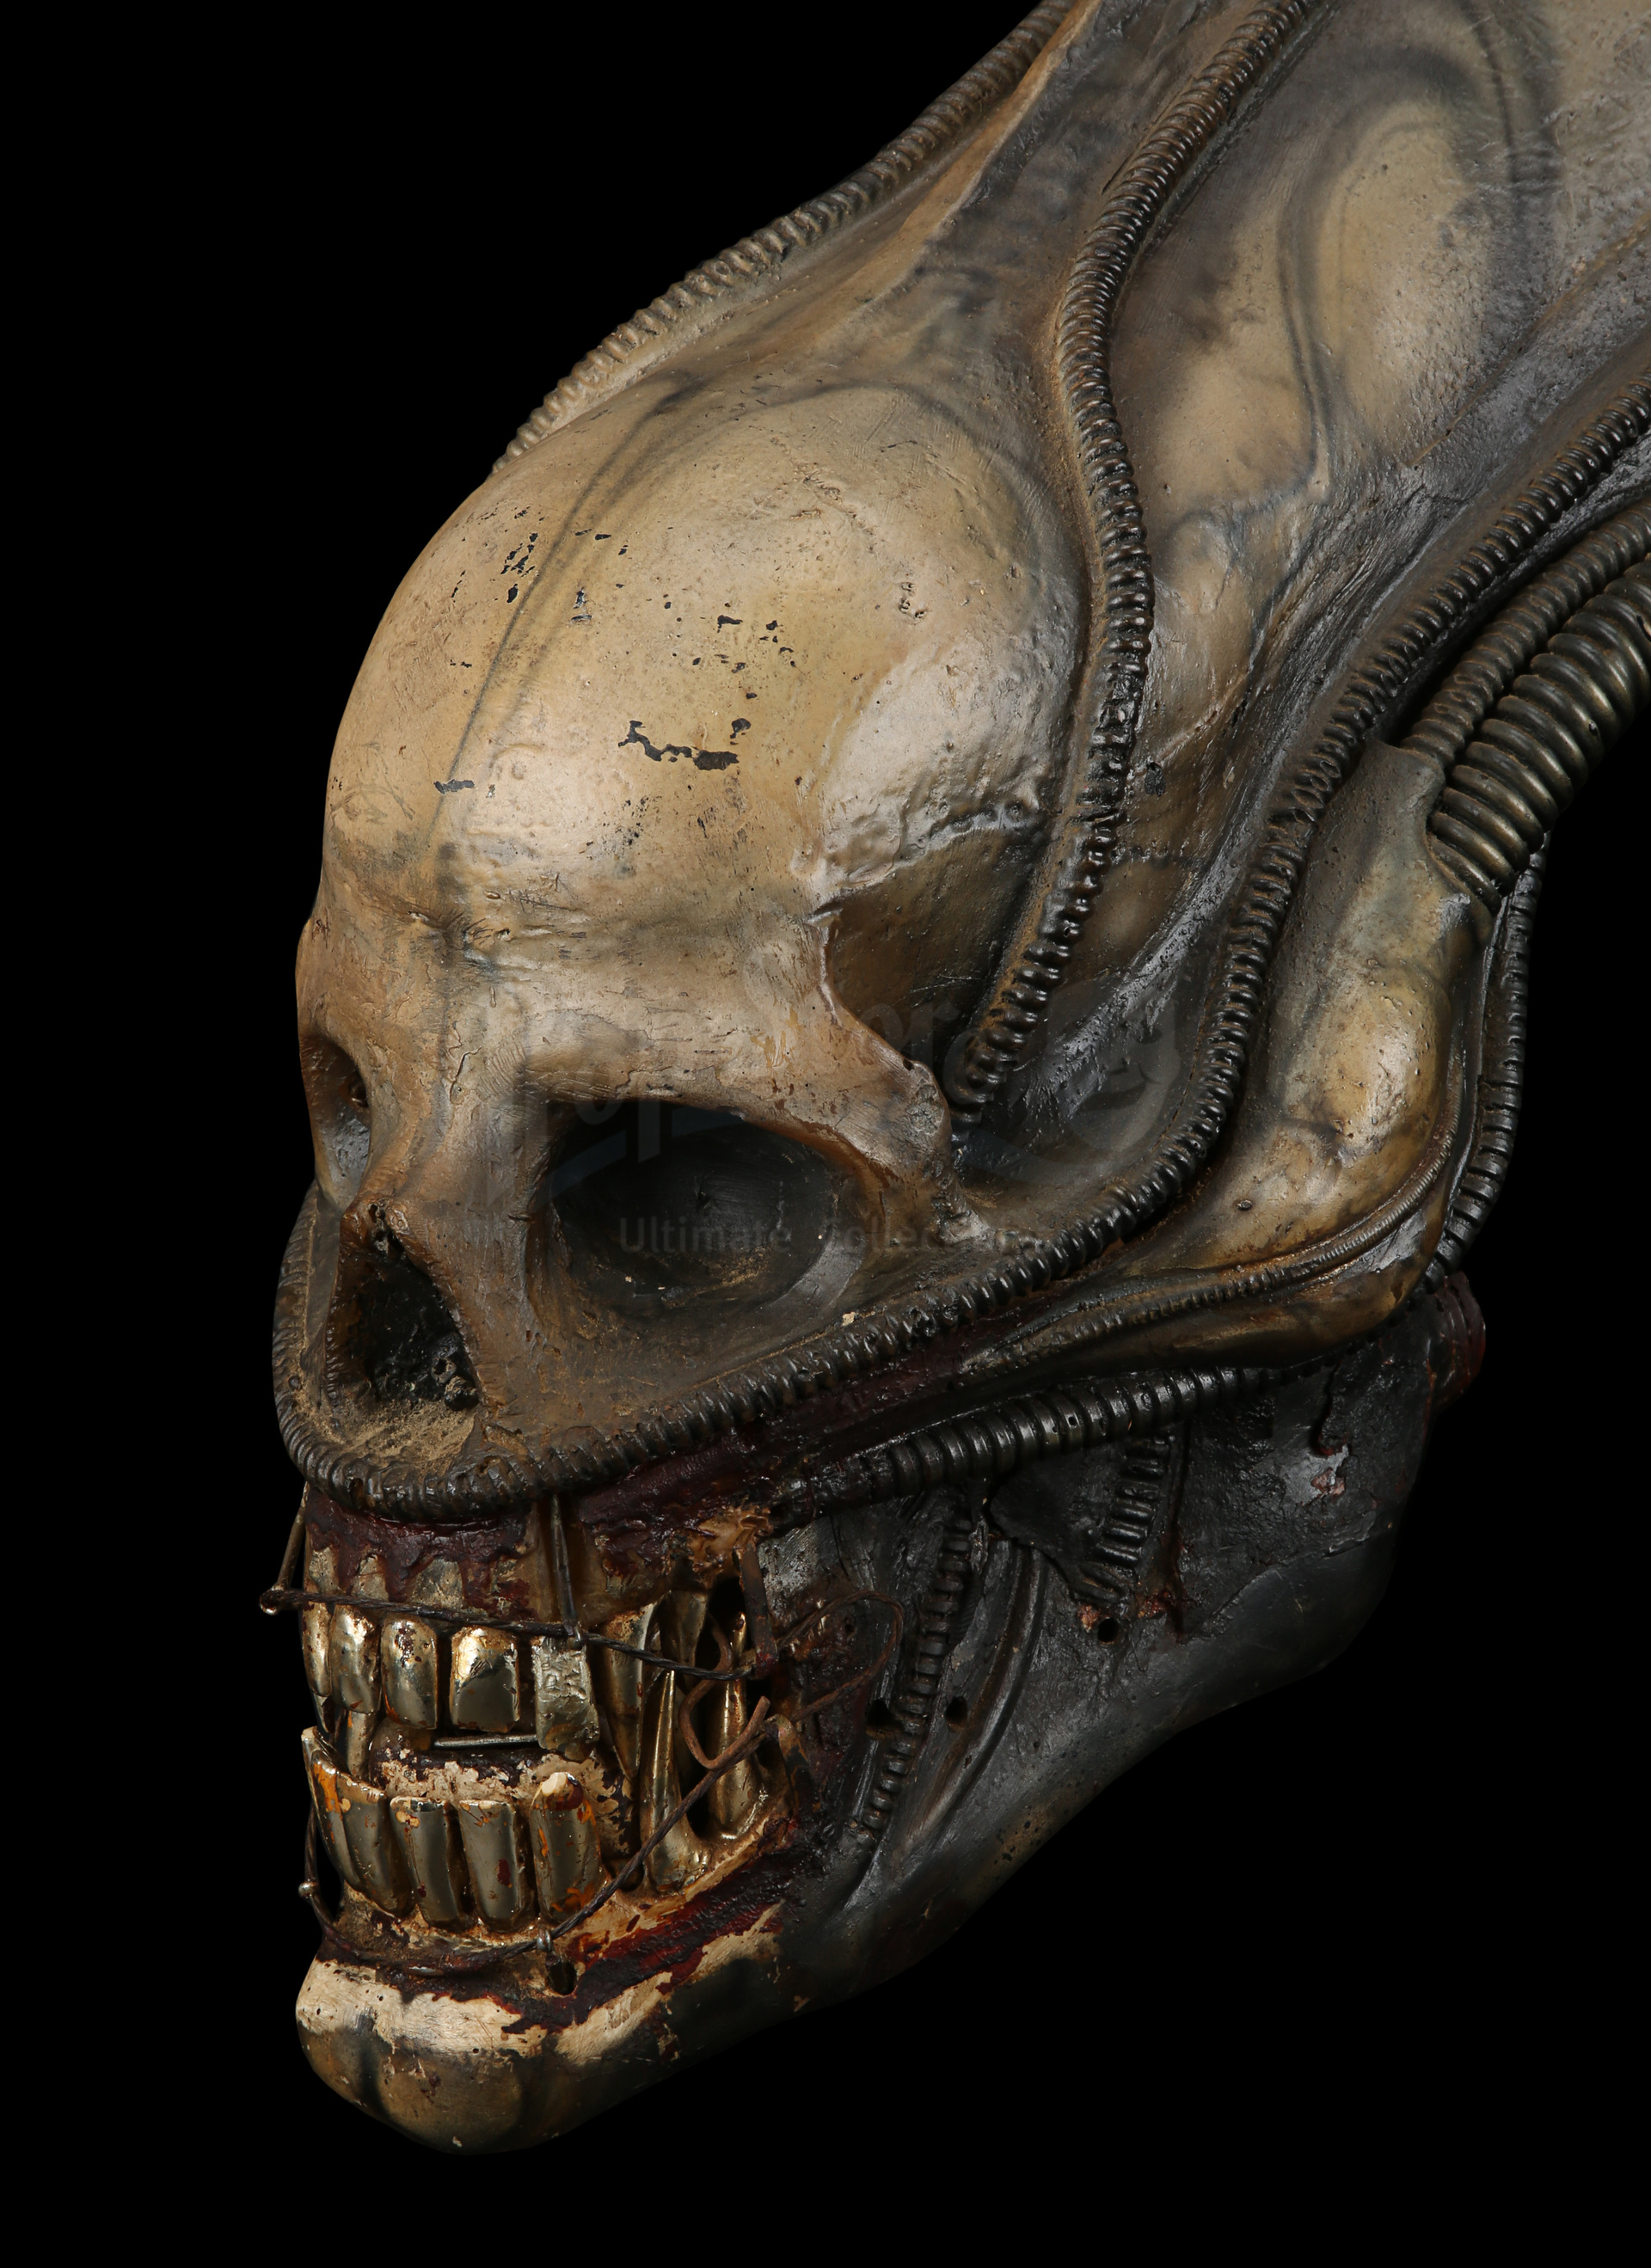 ALIEN (1979) - H.R. Giger-designed Special Effects Mechanical Alien Head - Image 7 of 34